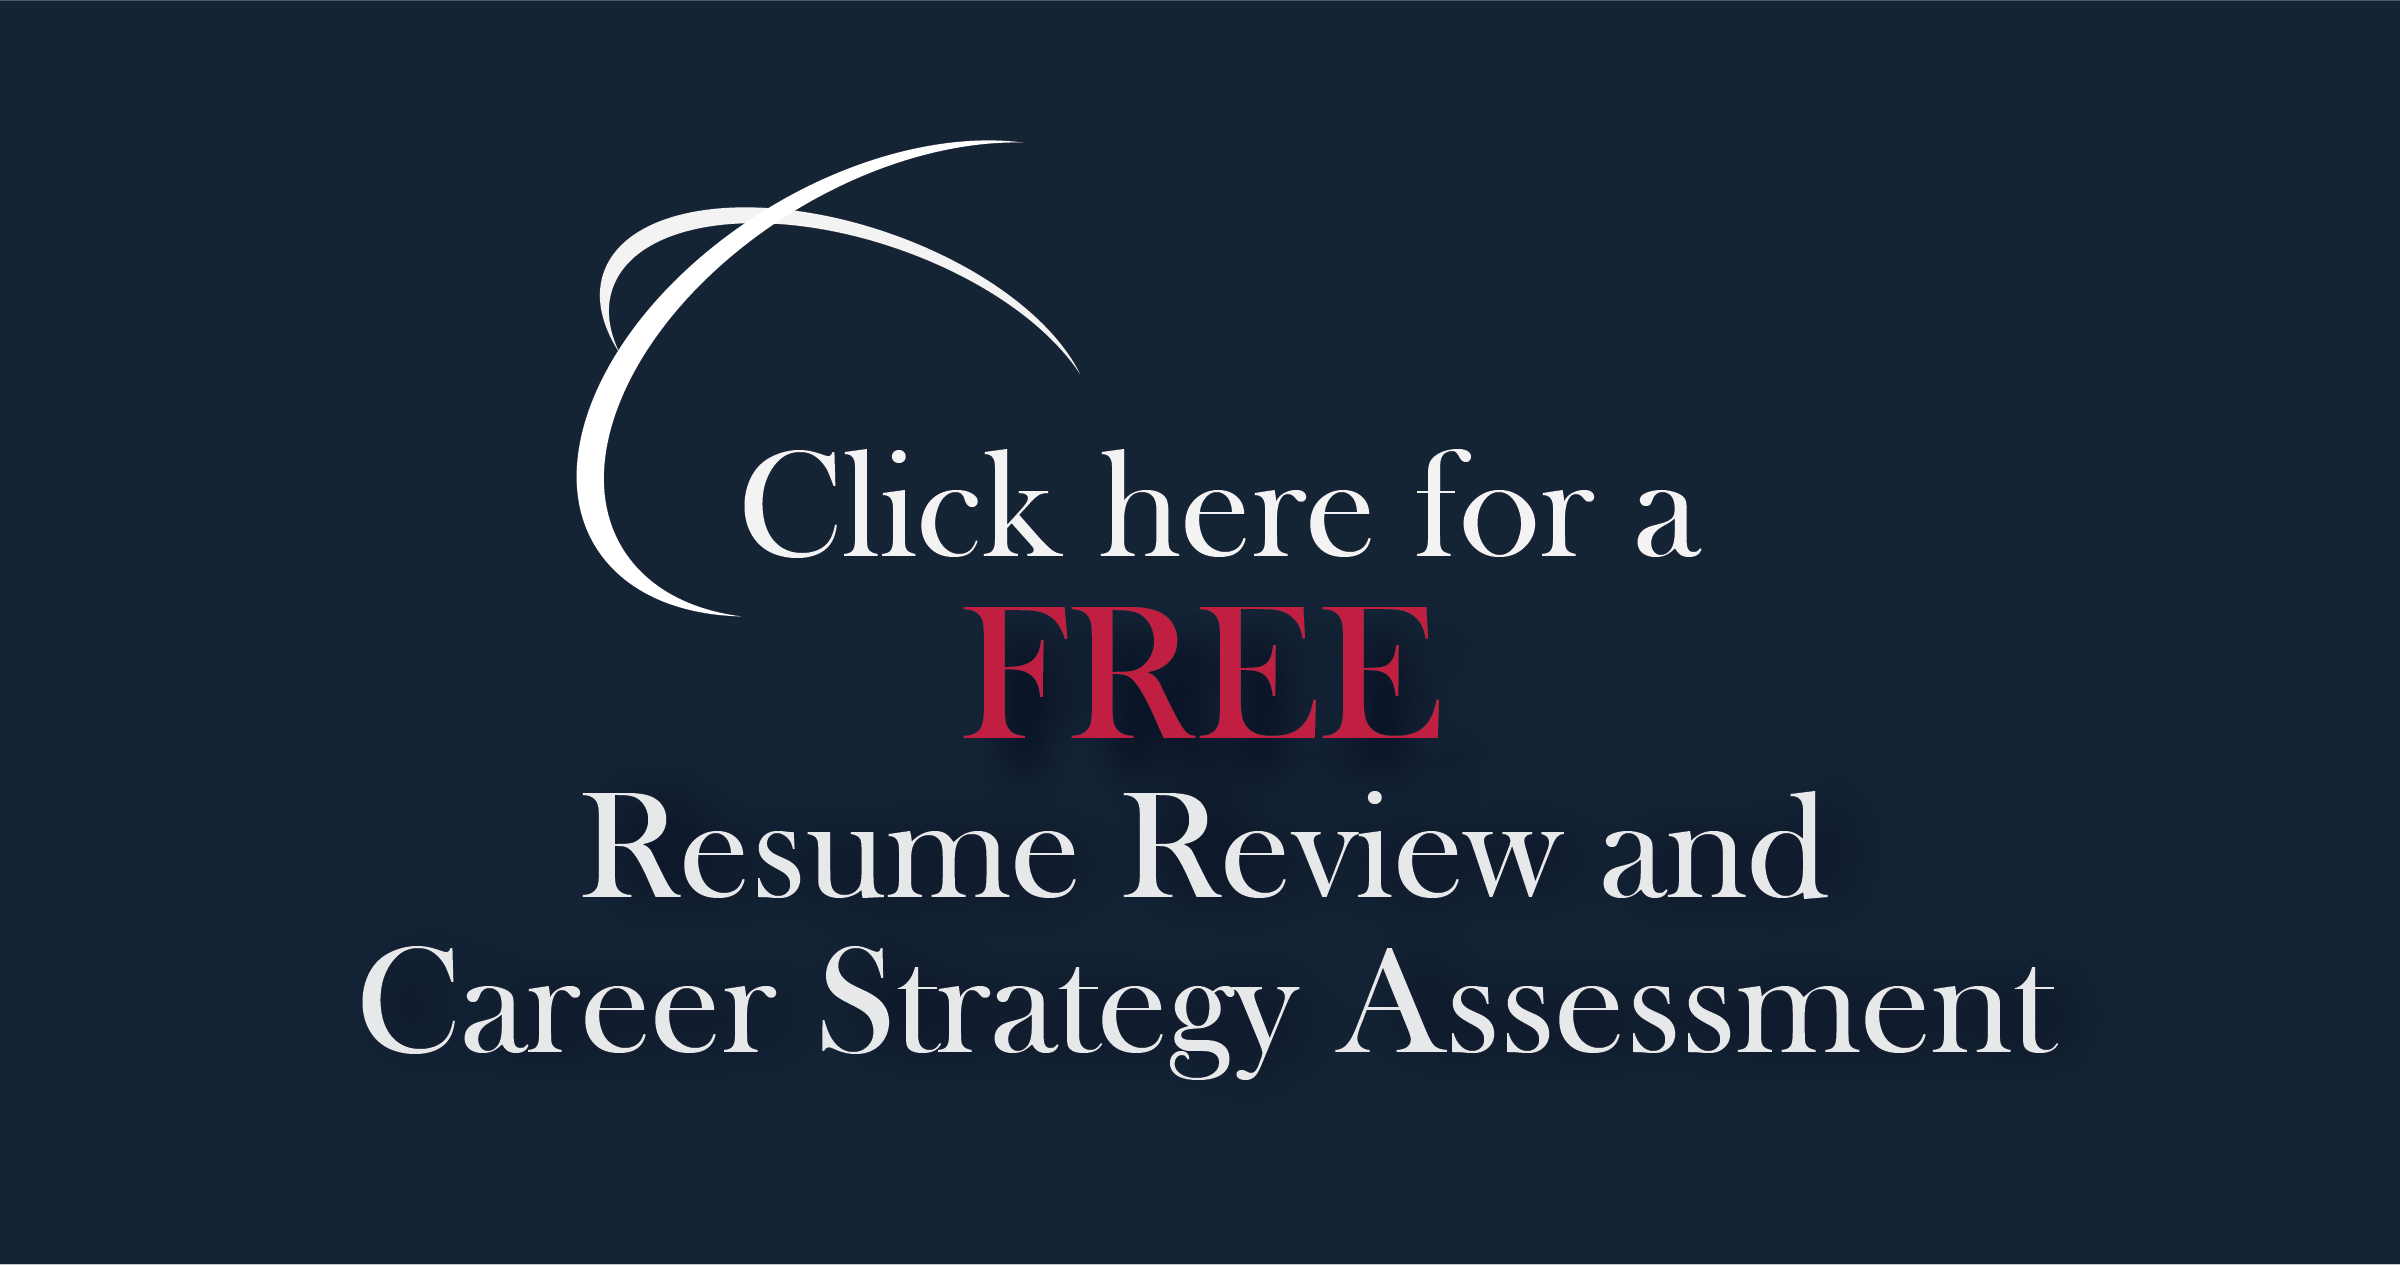 Career Management And Outplacement Services